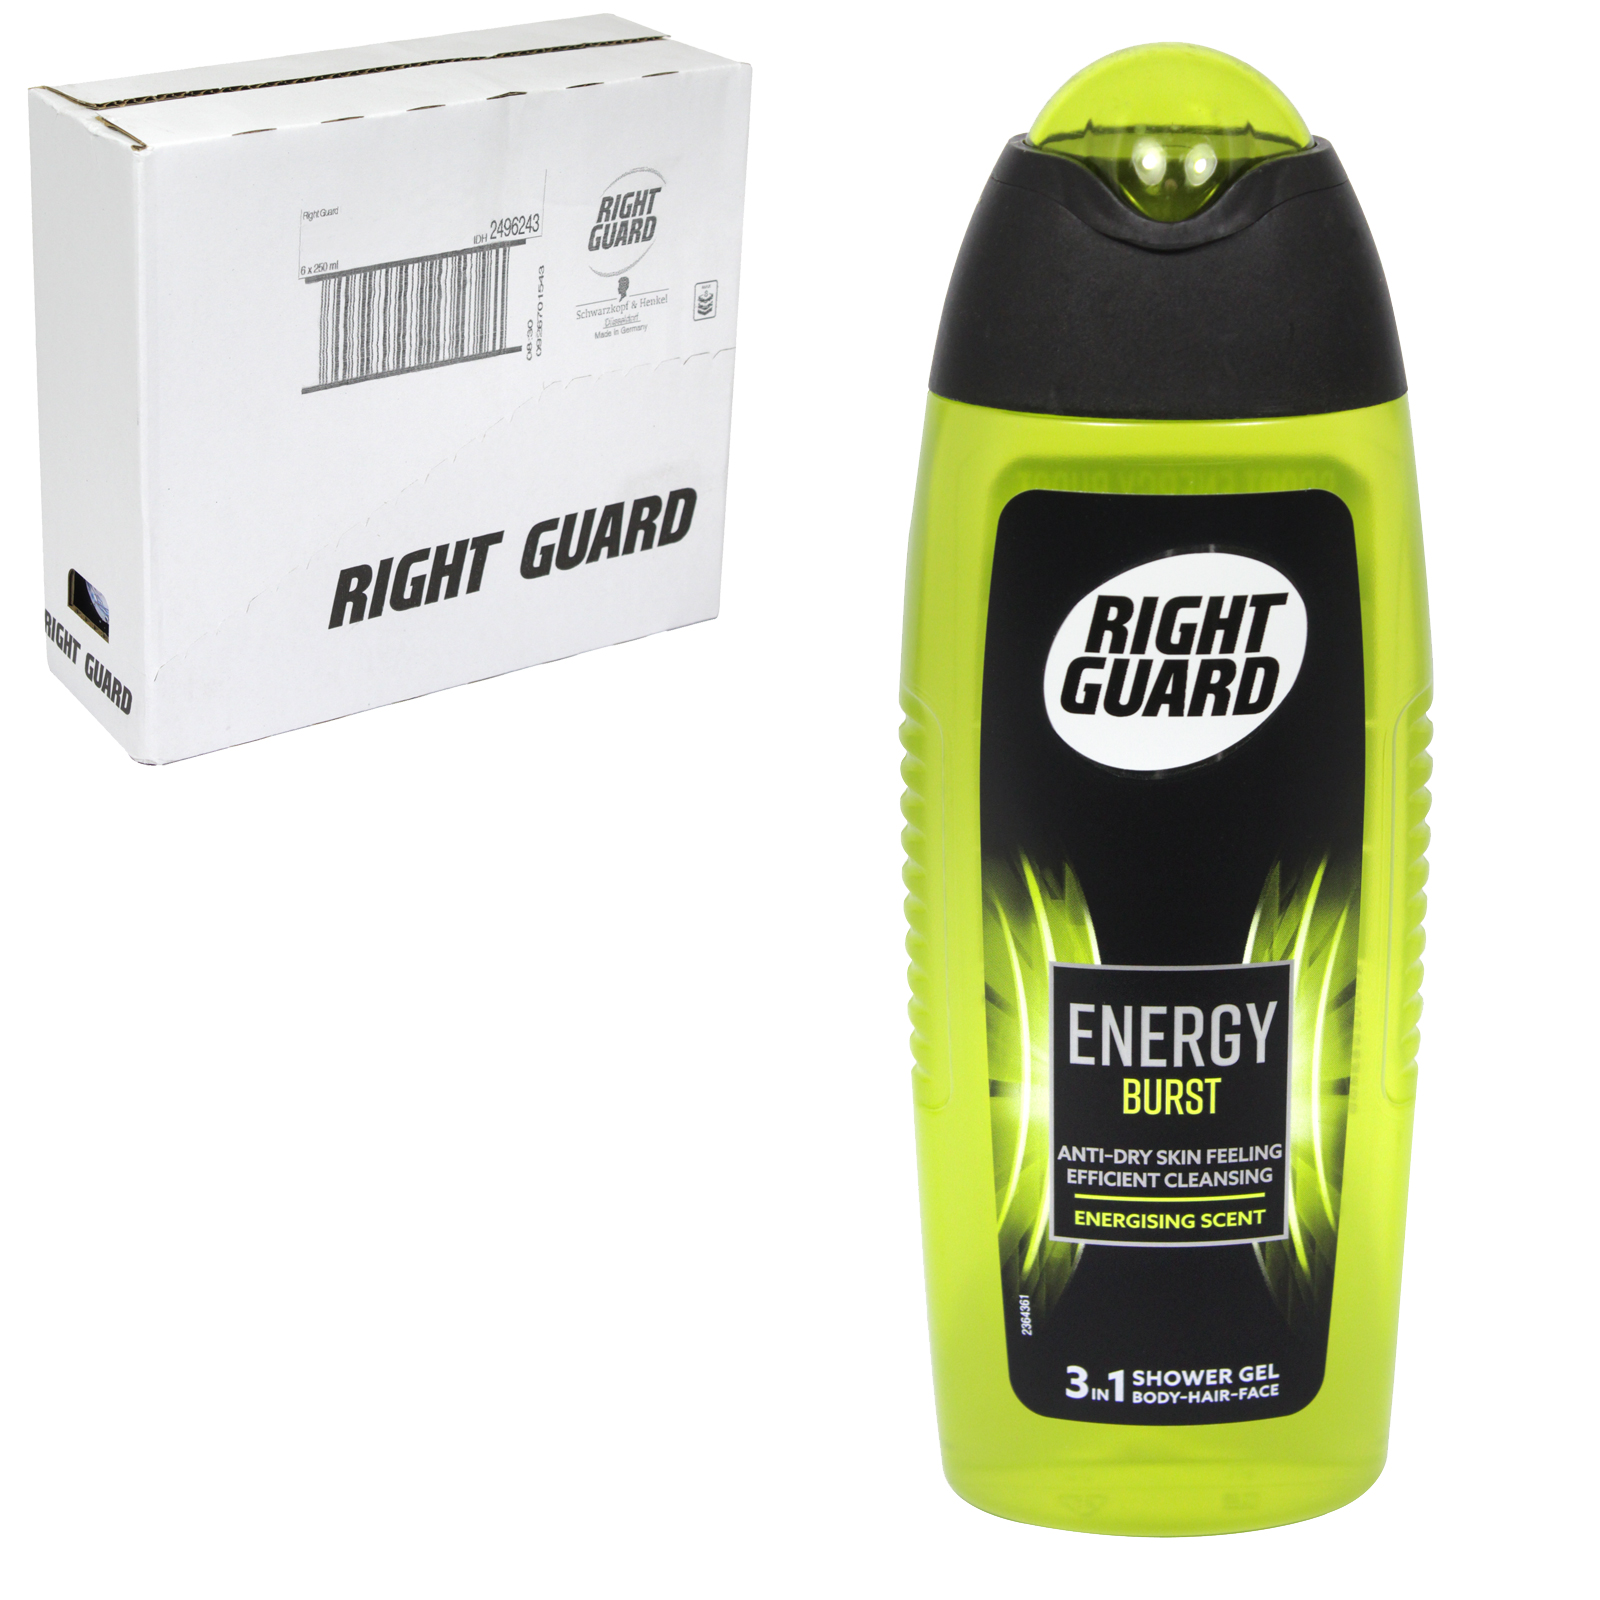 RIGHT GUARD 3IN1 SHOWER GEL 250ML ENERGY BURST ENERGISING SCENT X6